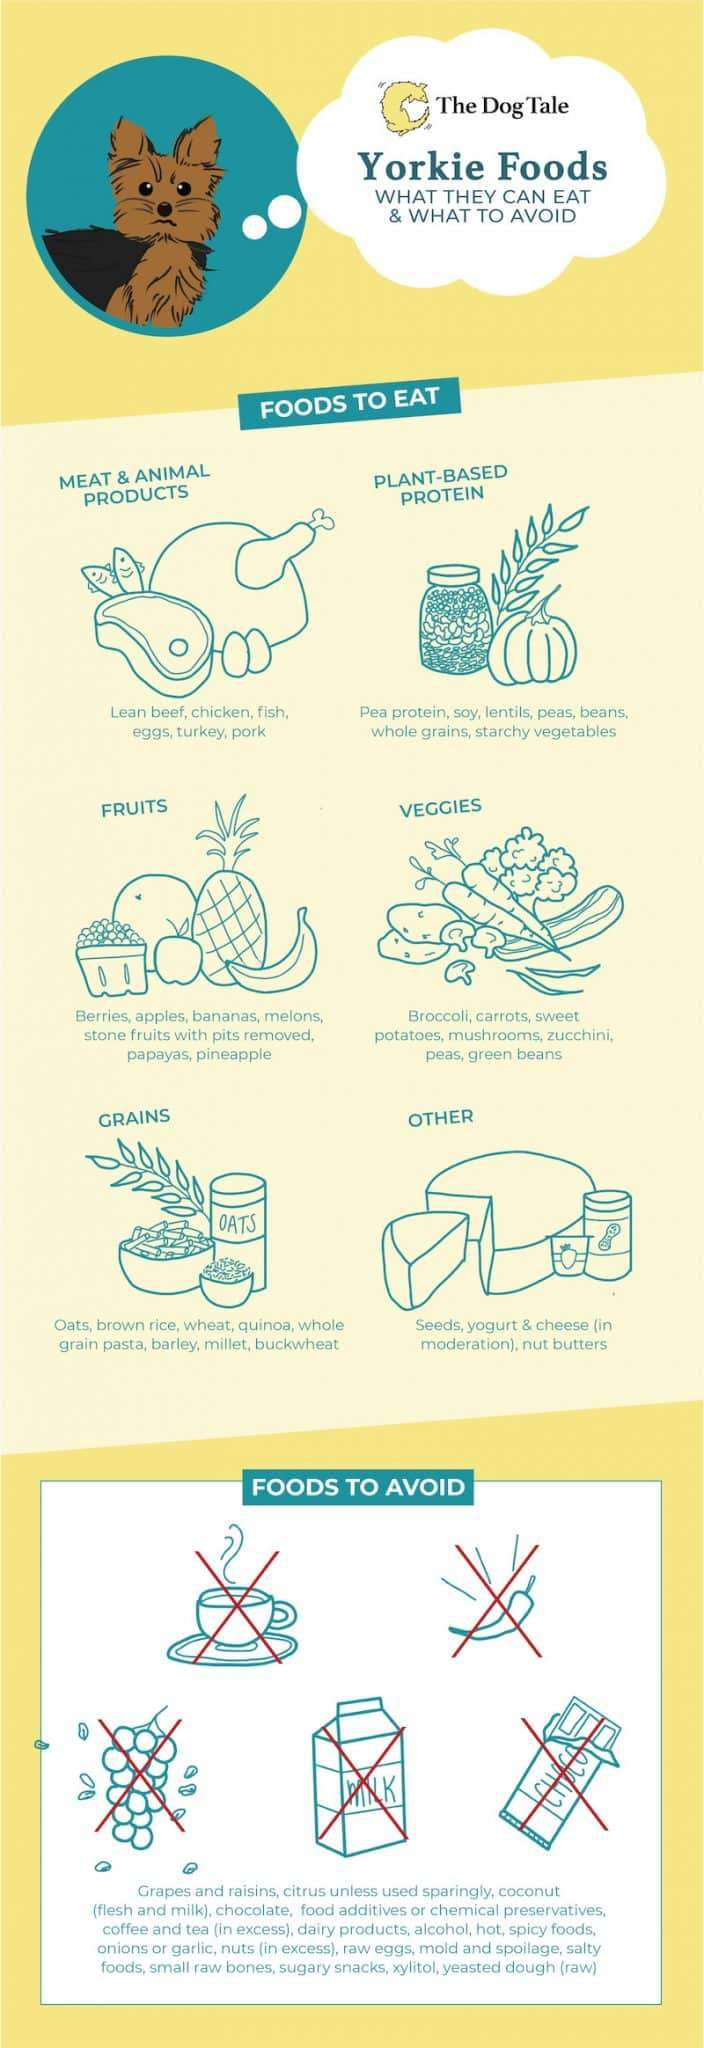 Foods Yorkes can eat and what foods to avoid